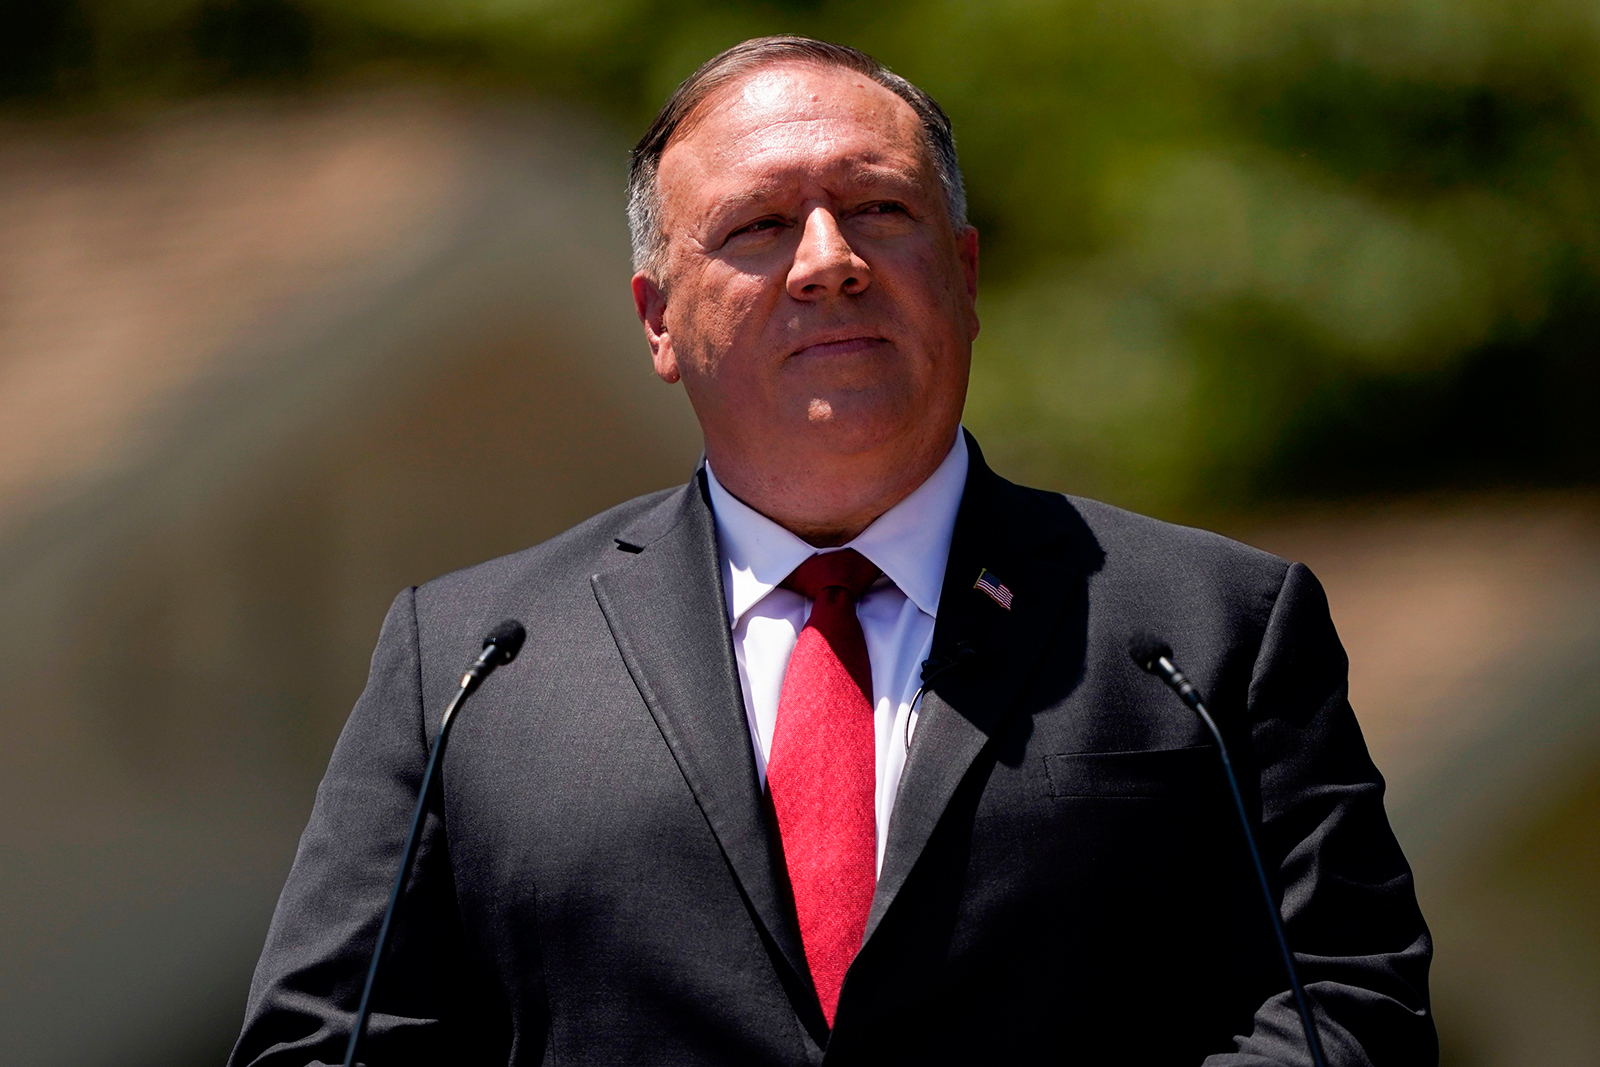 Pompeo to keynote Florida conservative Christian event, raising ethical and legal questions